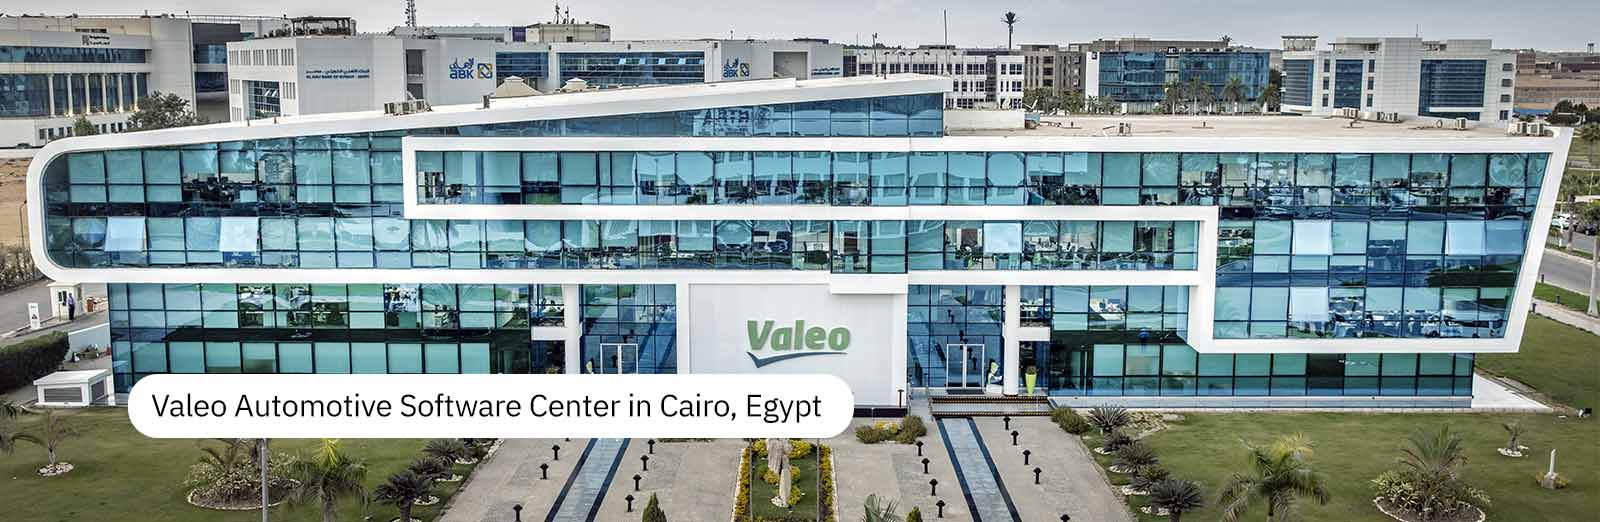 Valeo Automotive Software Center in Cairo, Egypt